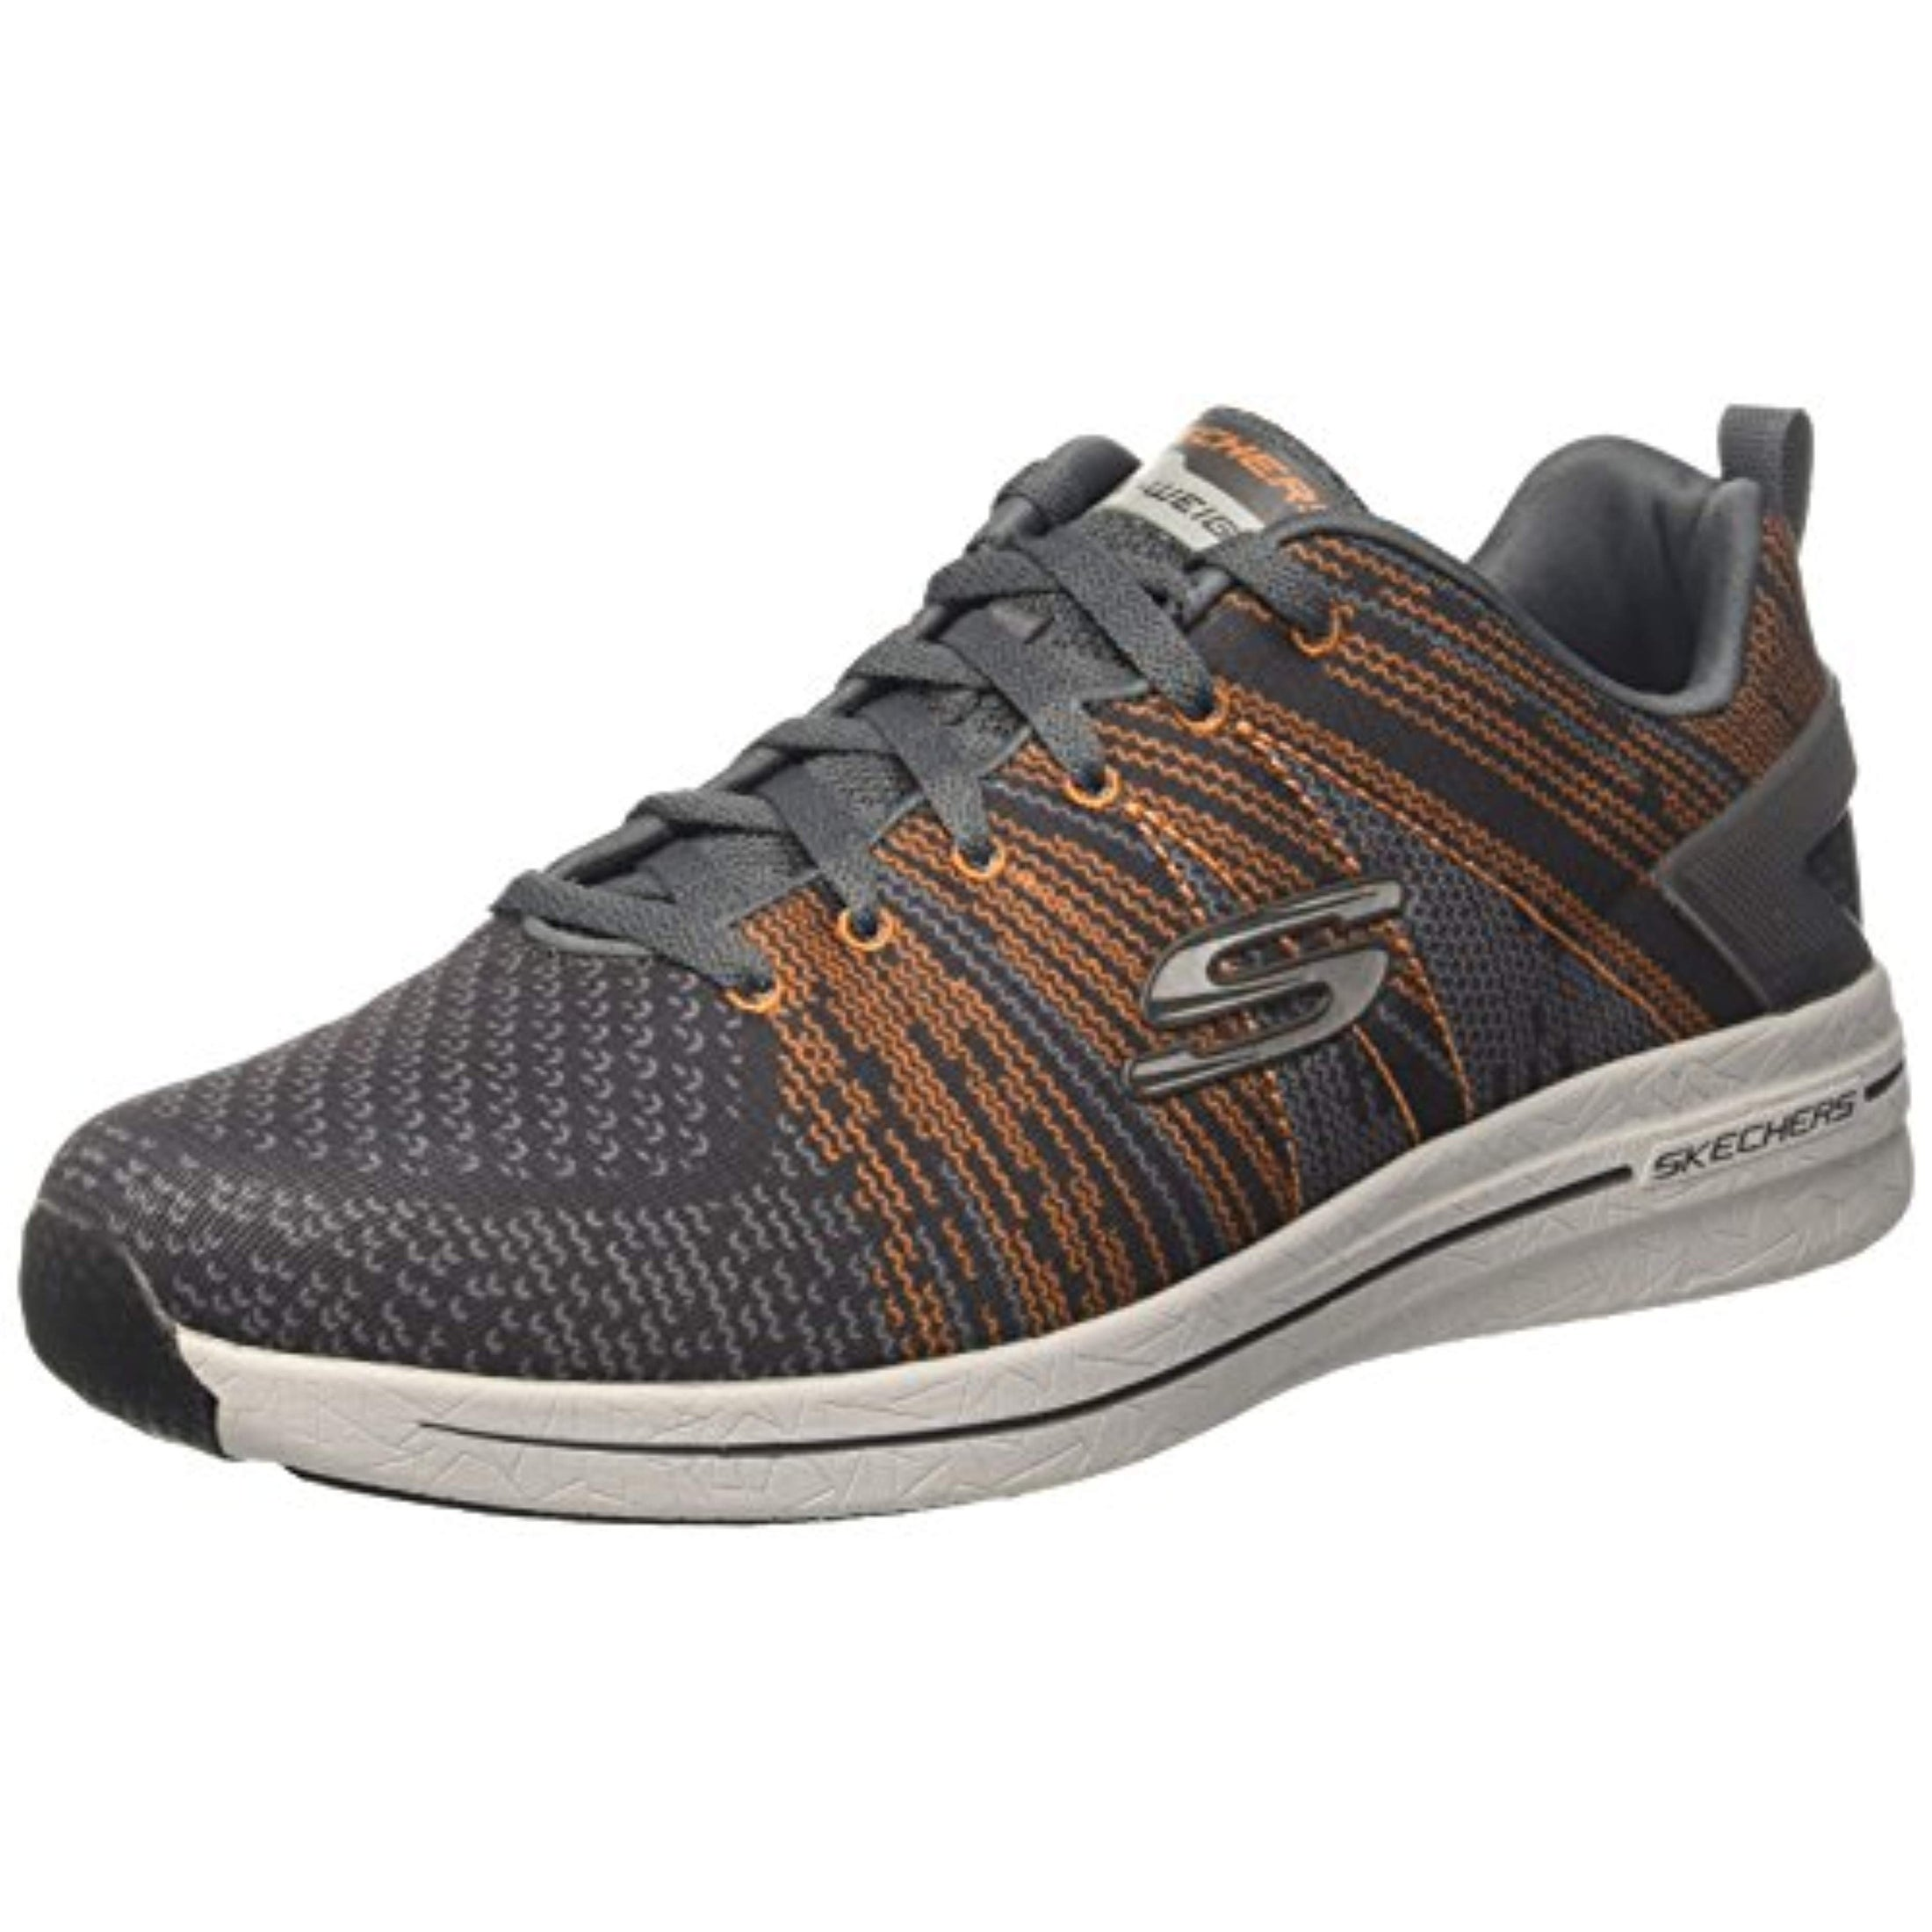 Burst 2.0 In The Mix Ii Running Shoes